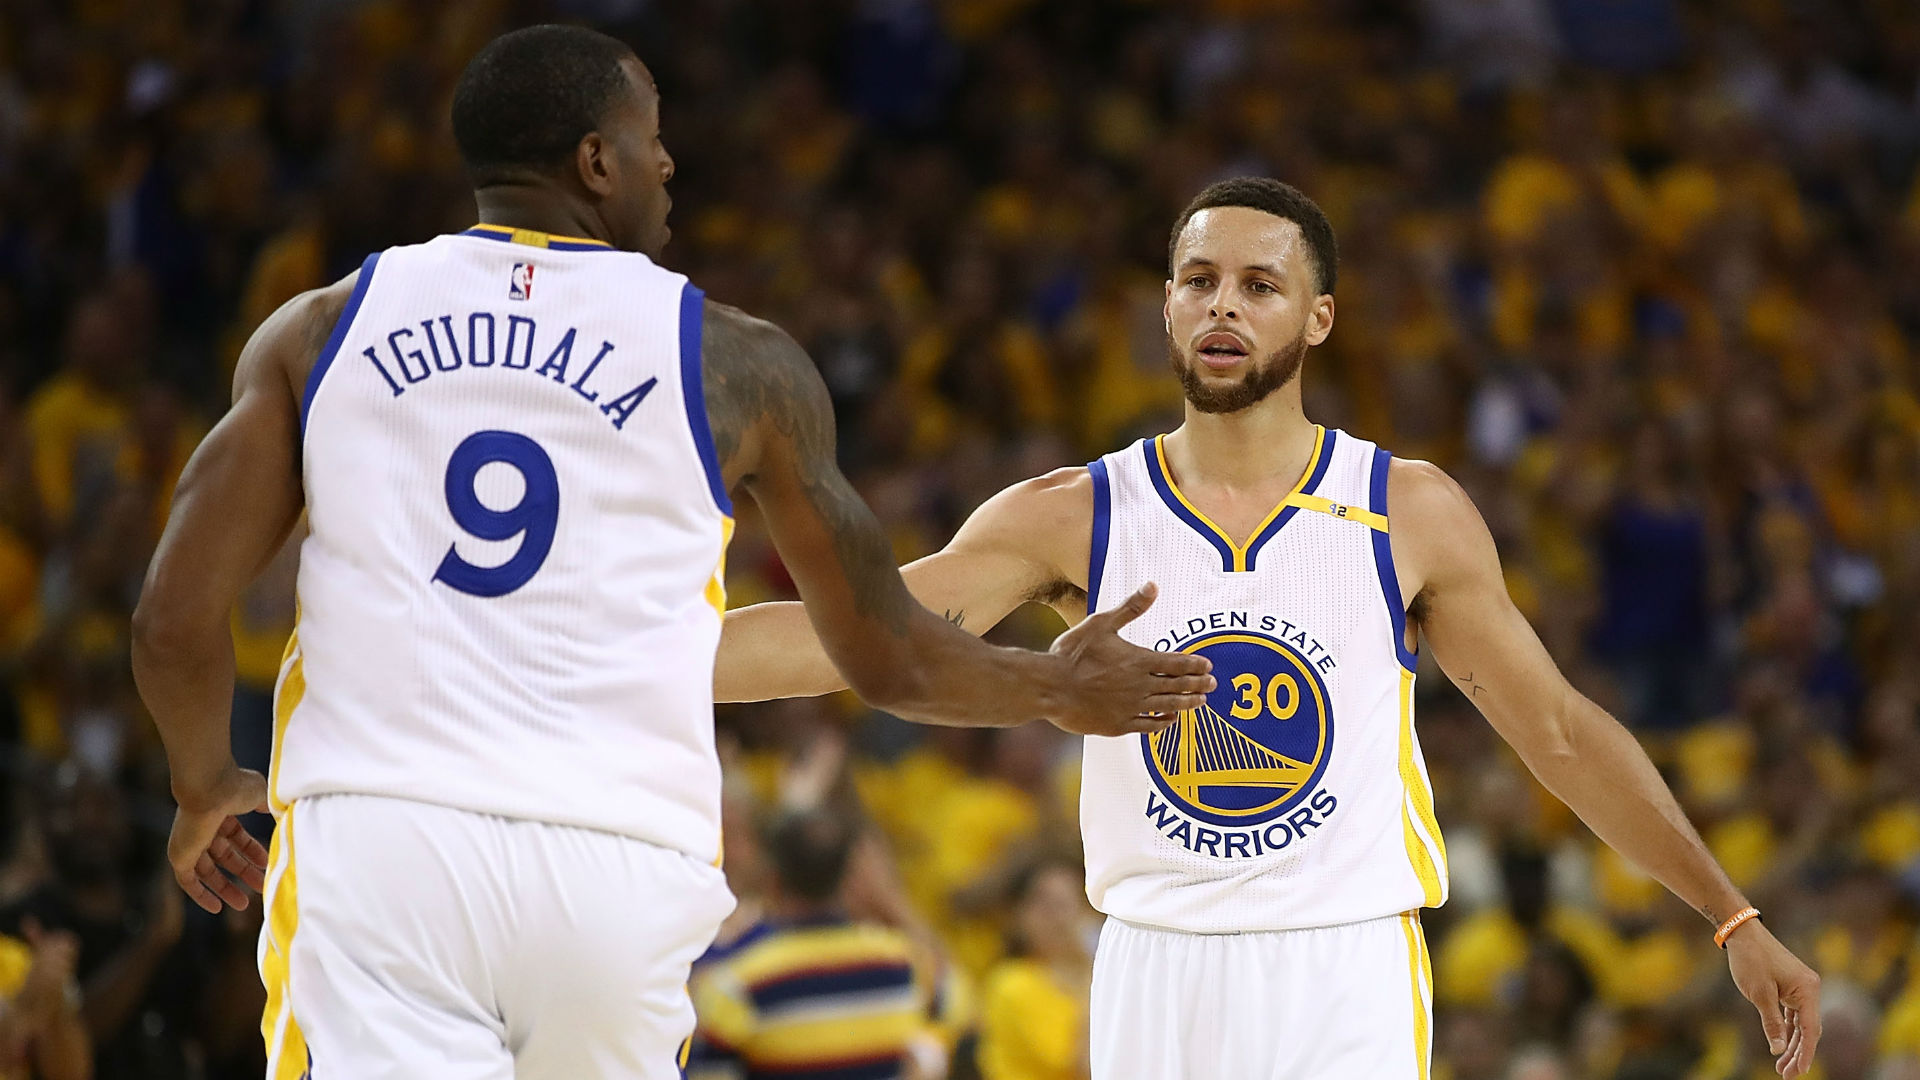 Stephen Curry injury update: Warriors hope guard will play on upcoming road trip